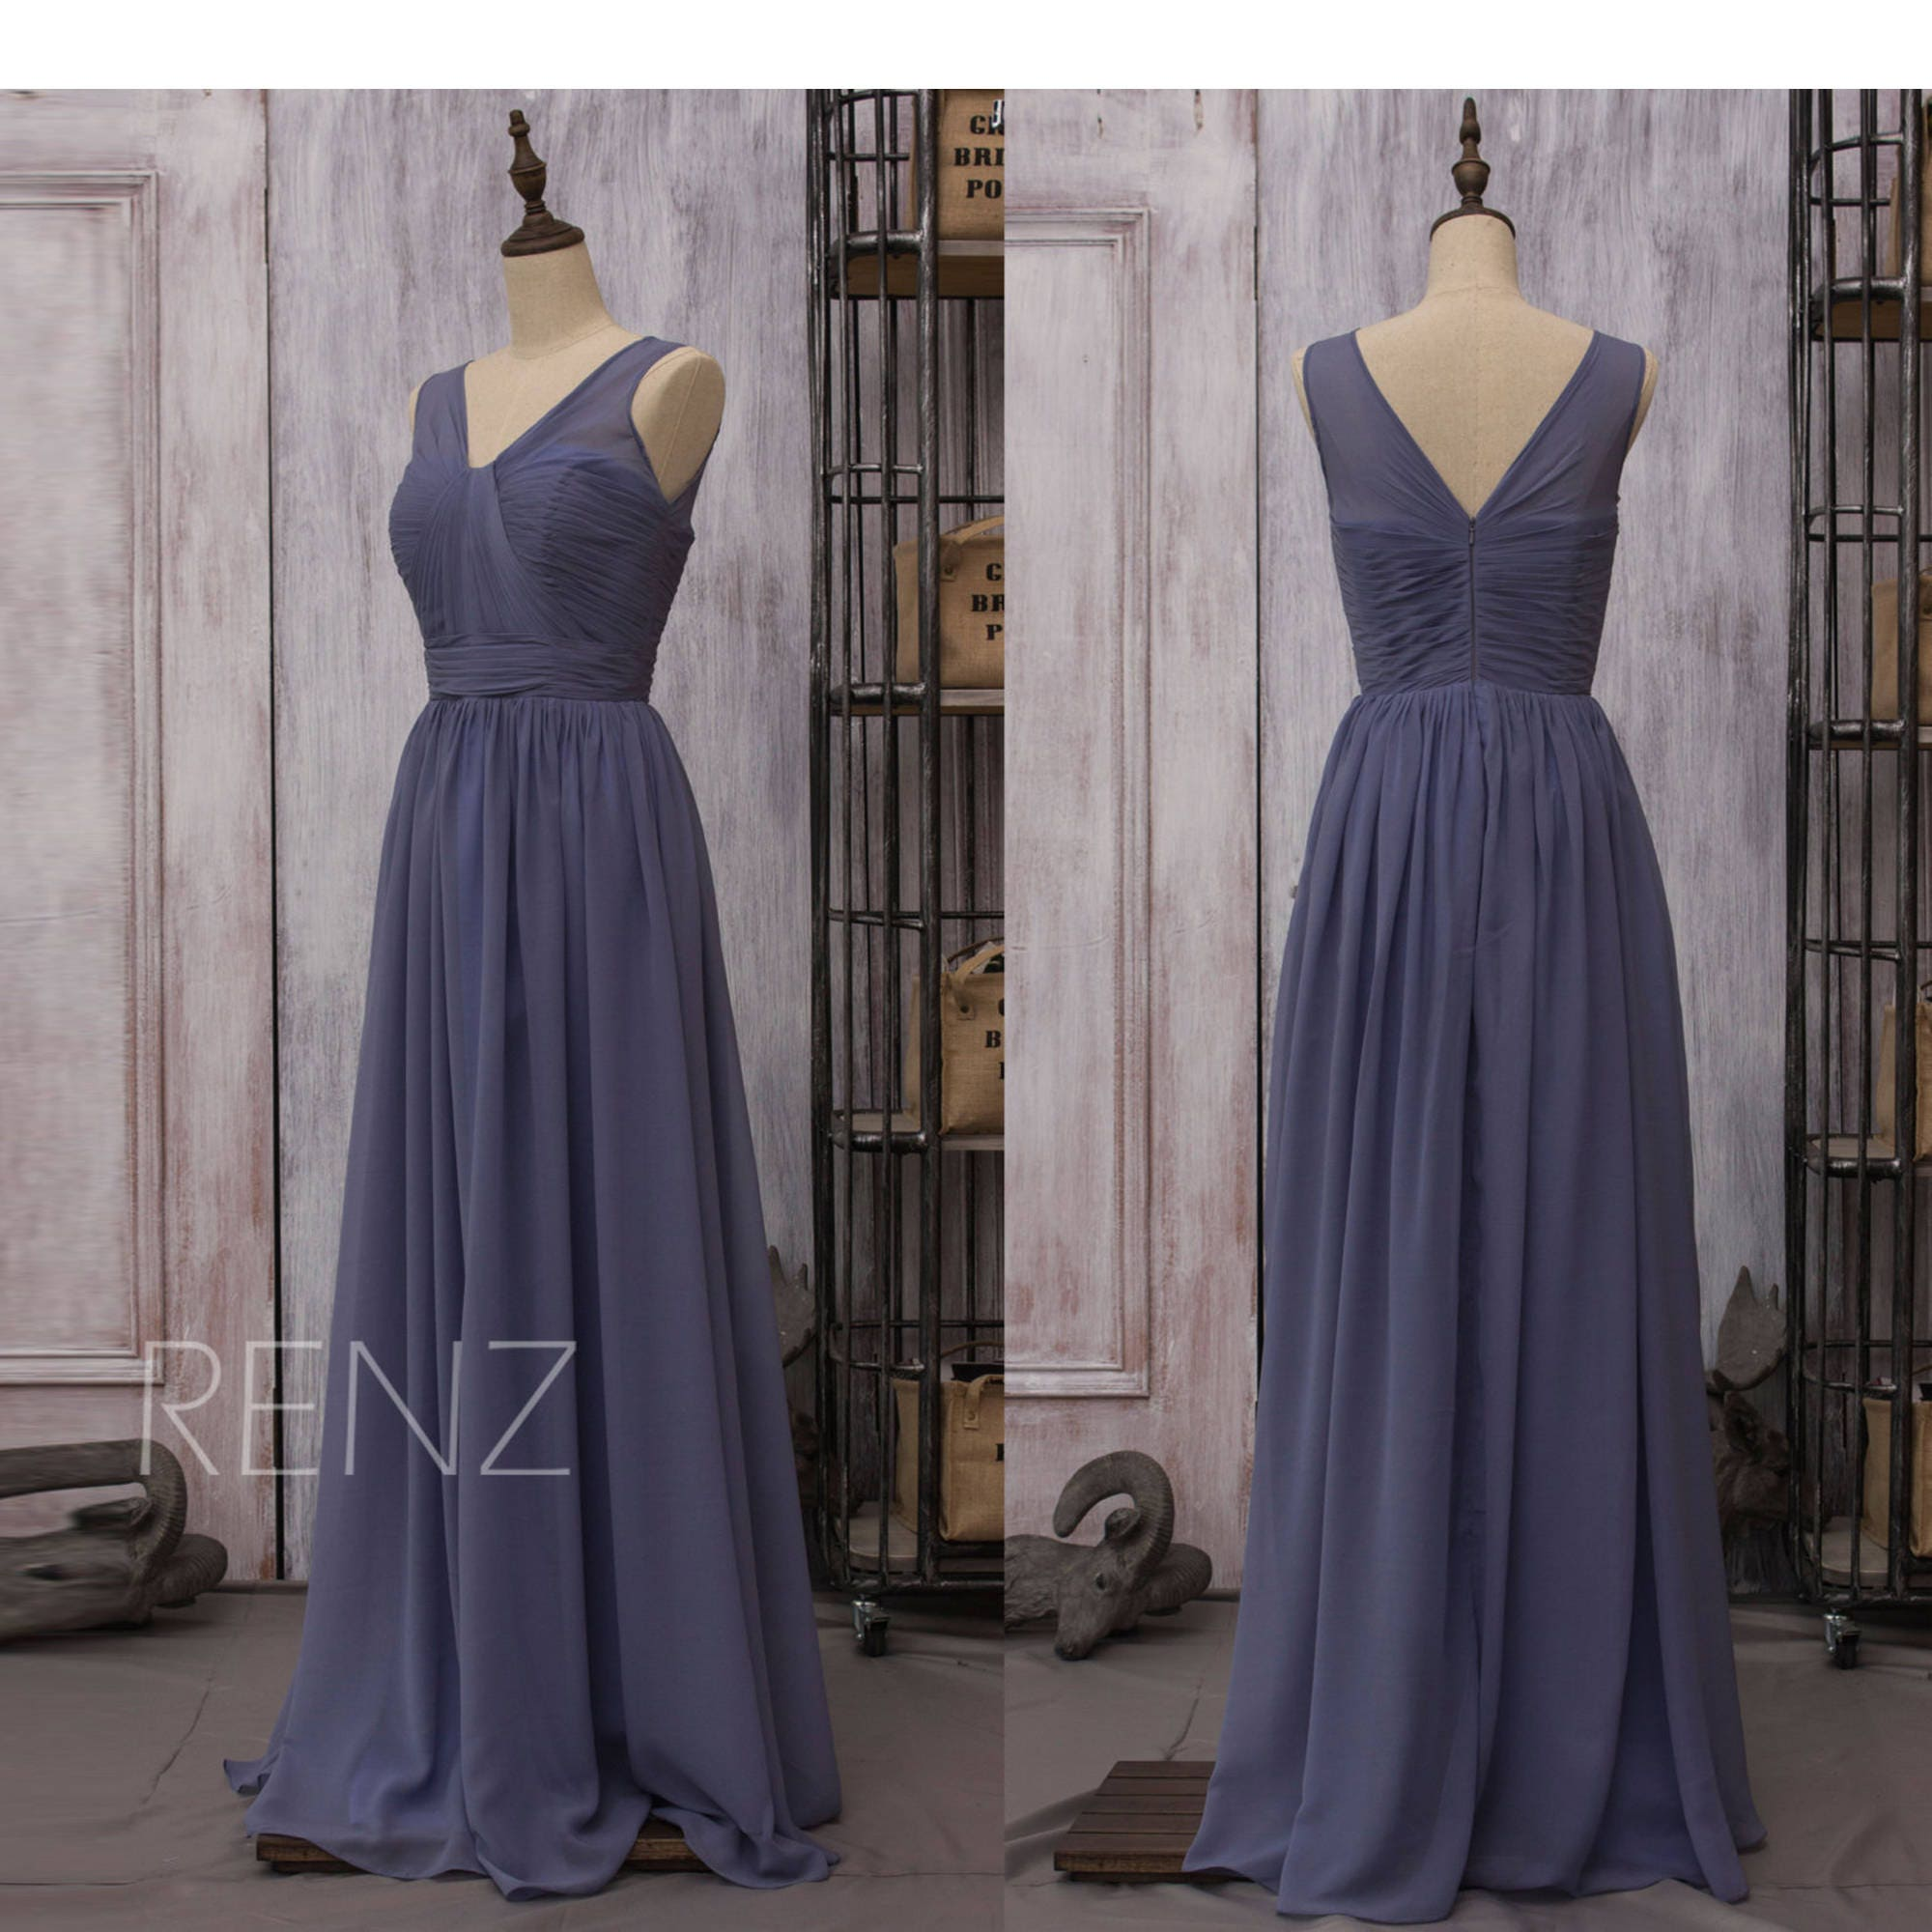 Chiffon Steel Blue Bridesmaid Dress Long Wedding Dress V